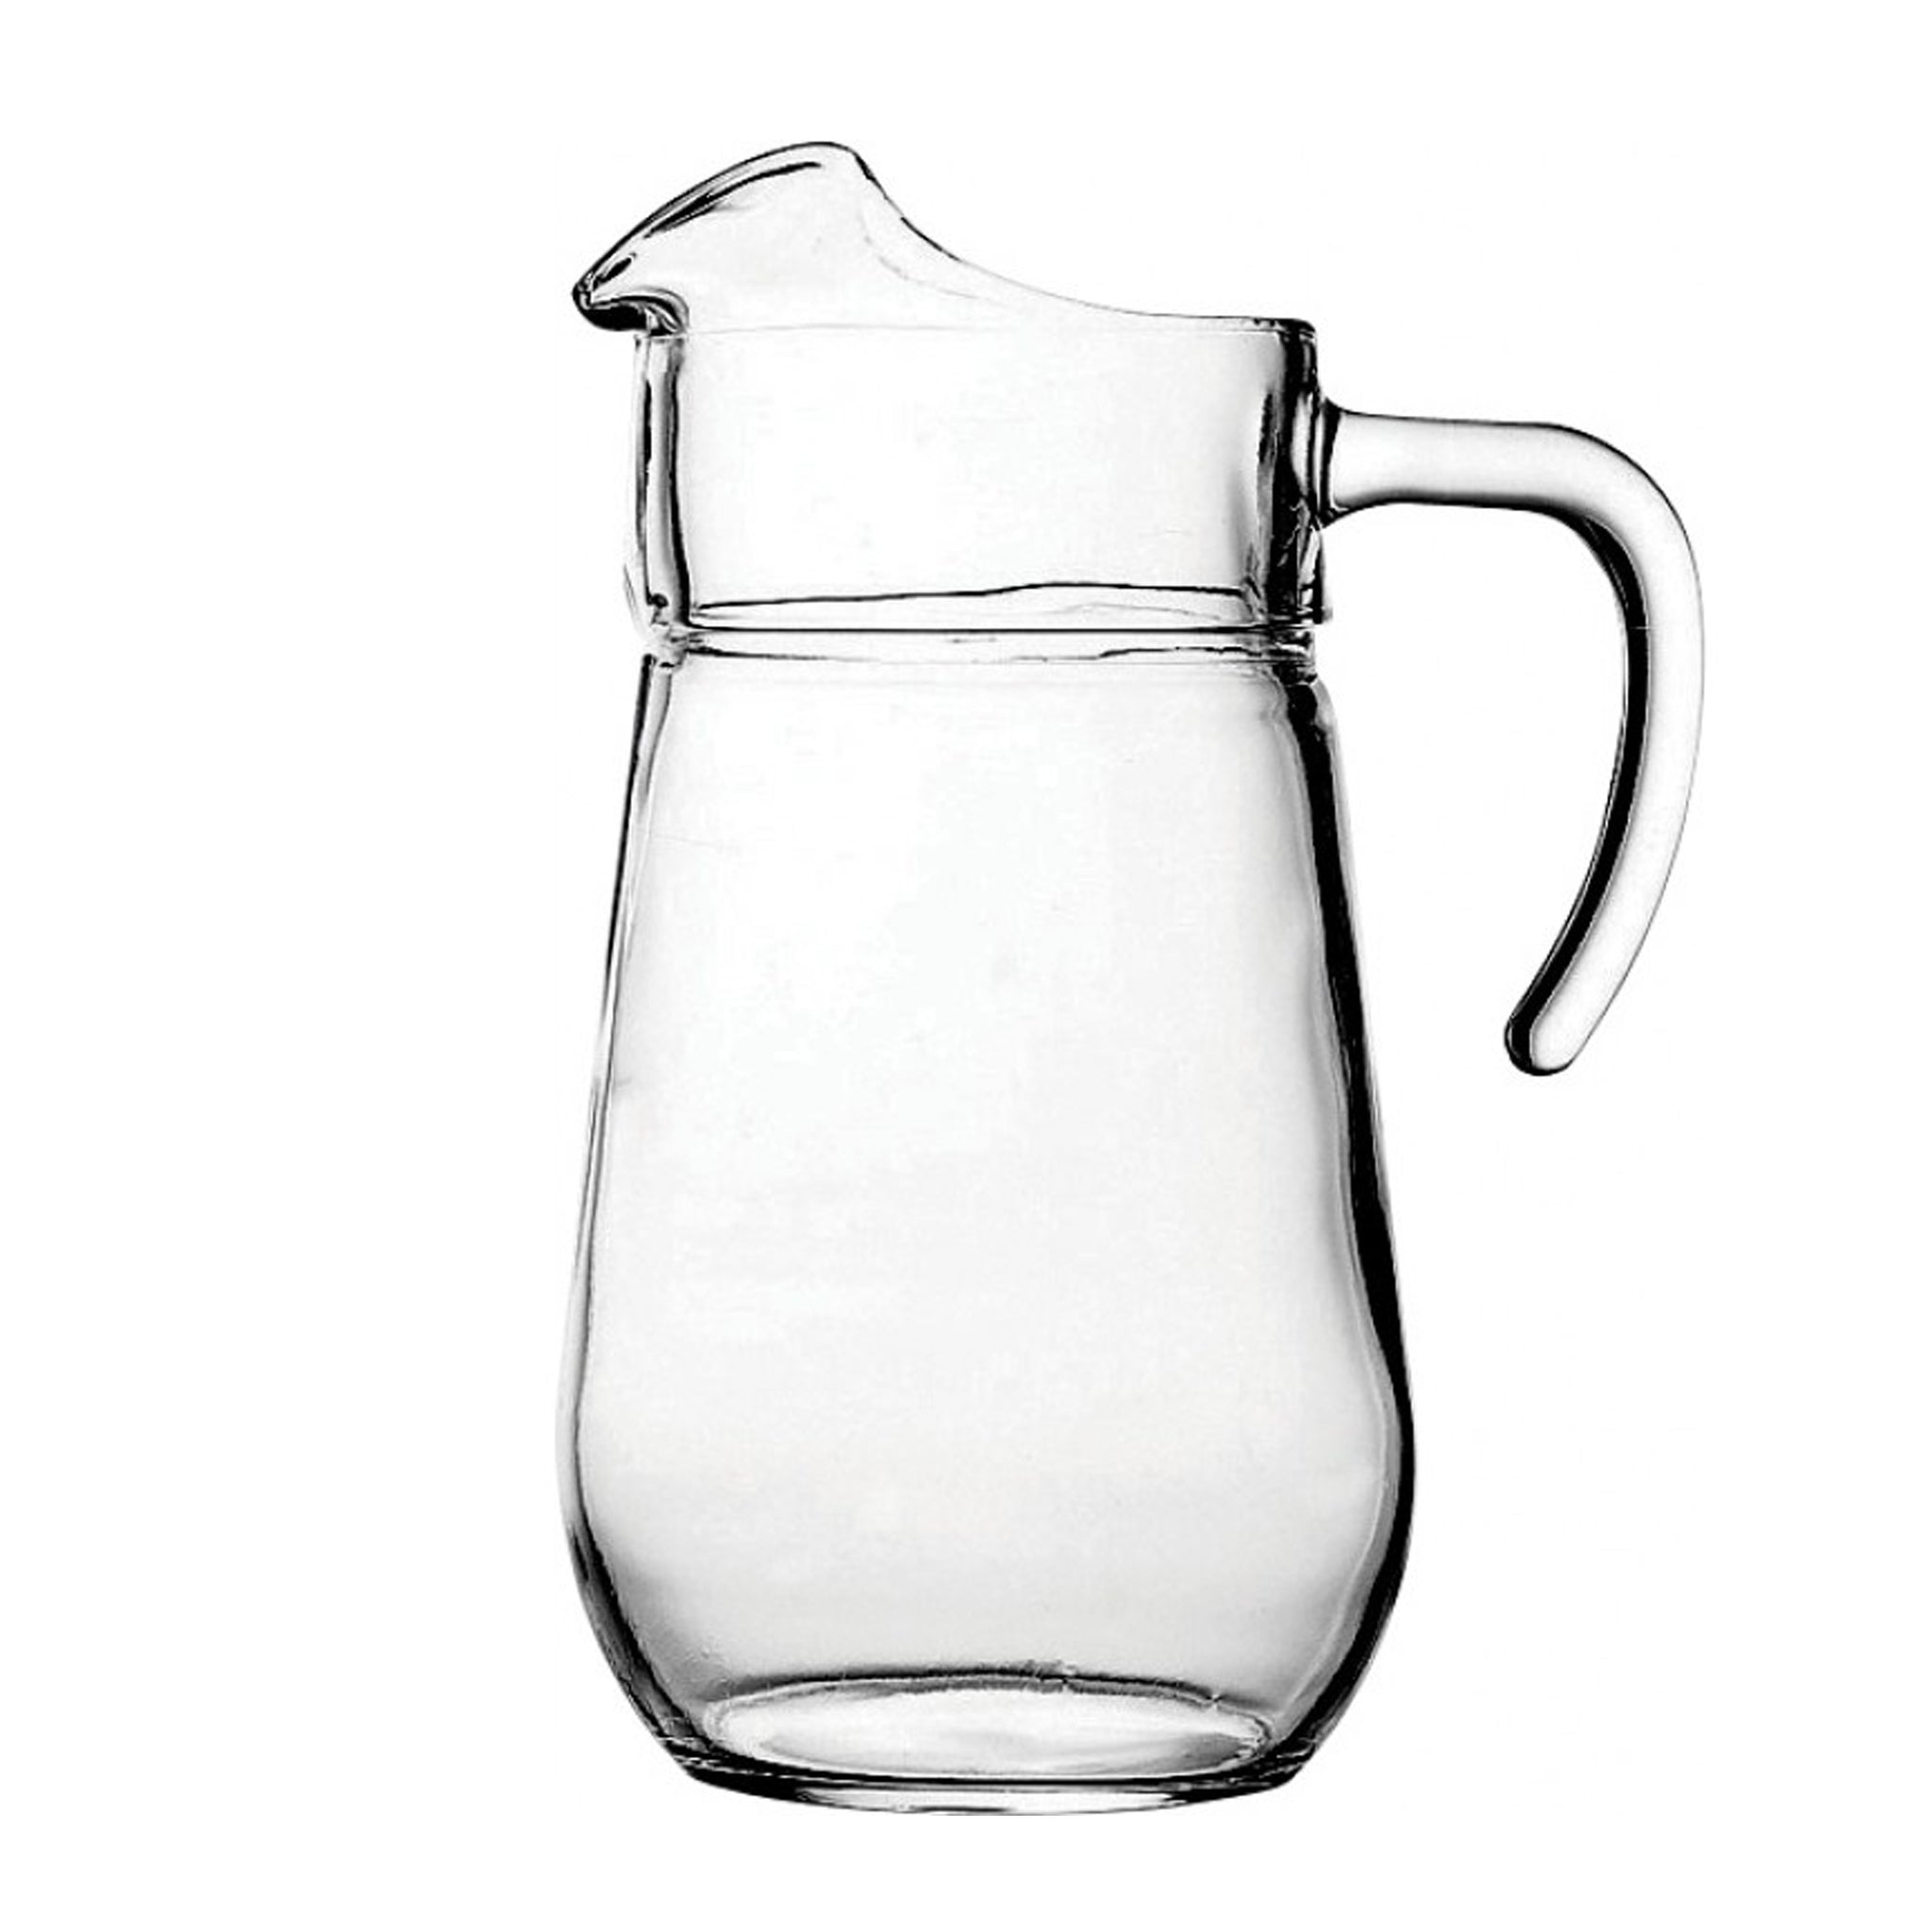 HIGH QUALITY GLASS CONTAINER 1 PC